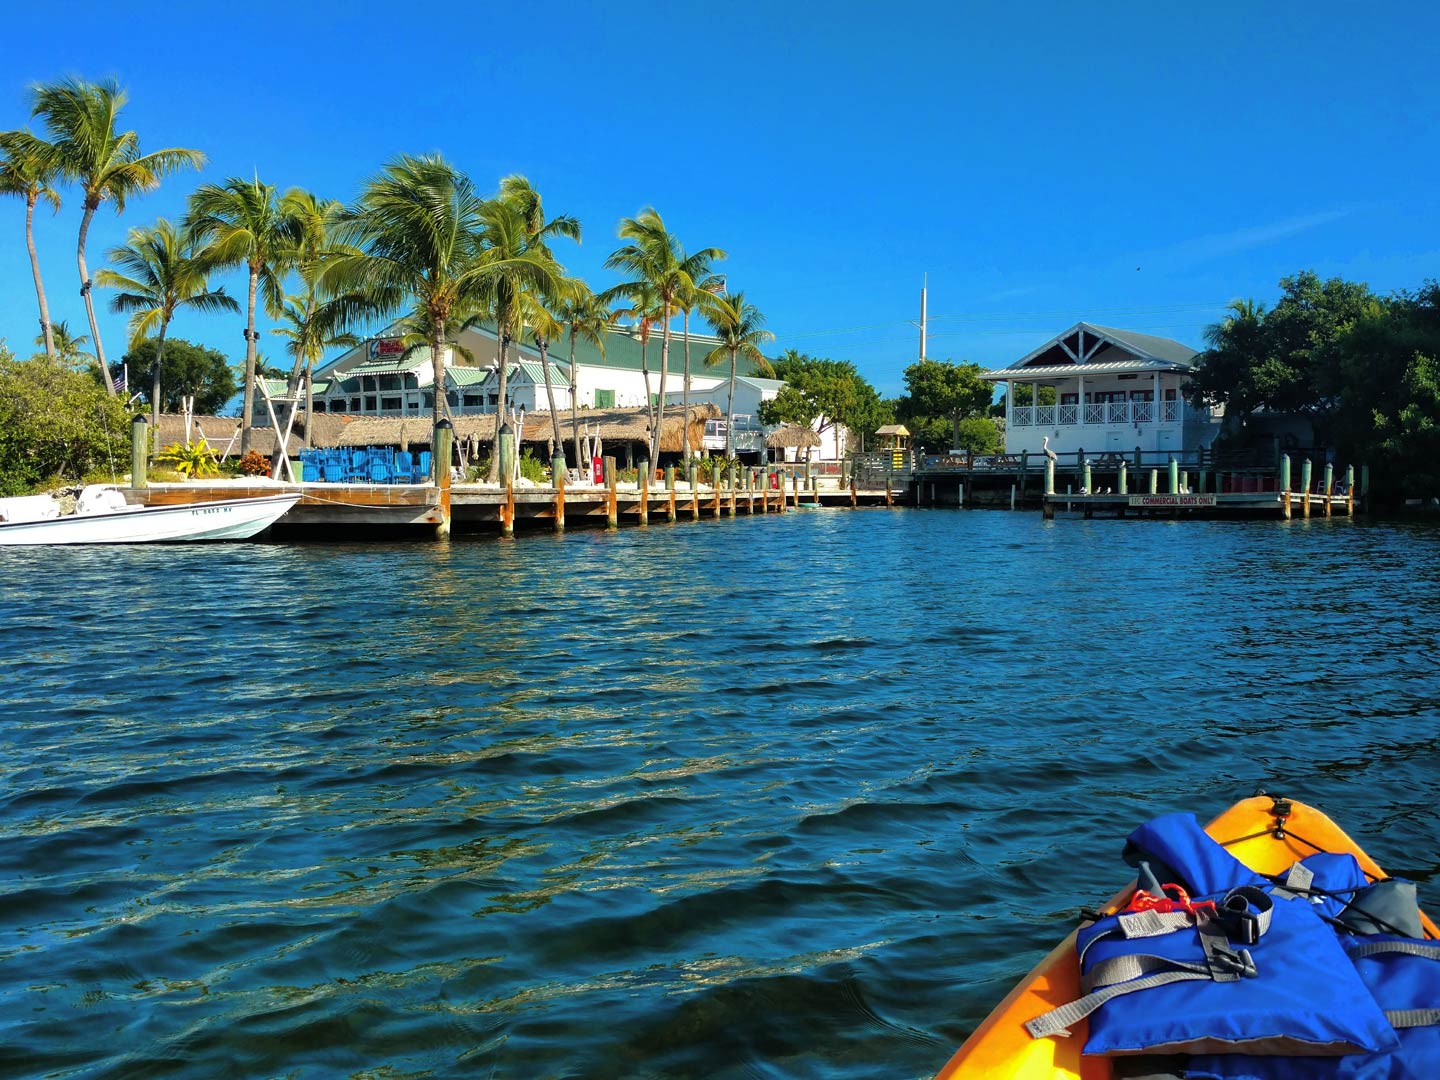 First person view from a kayak in Key Largo, Florida